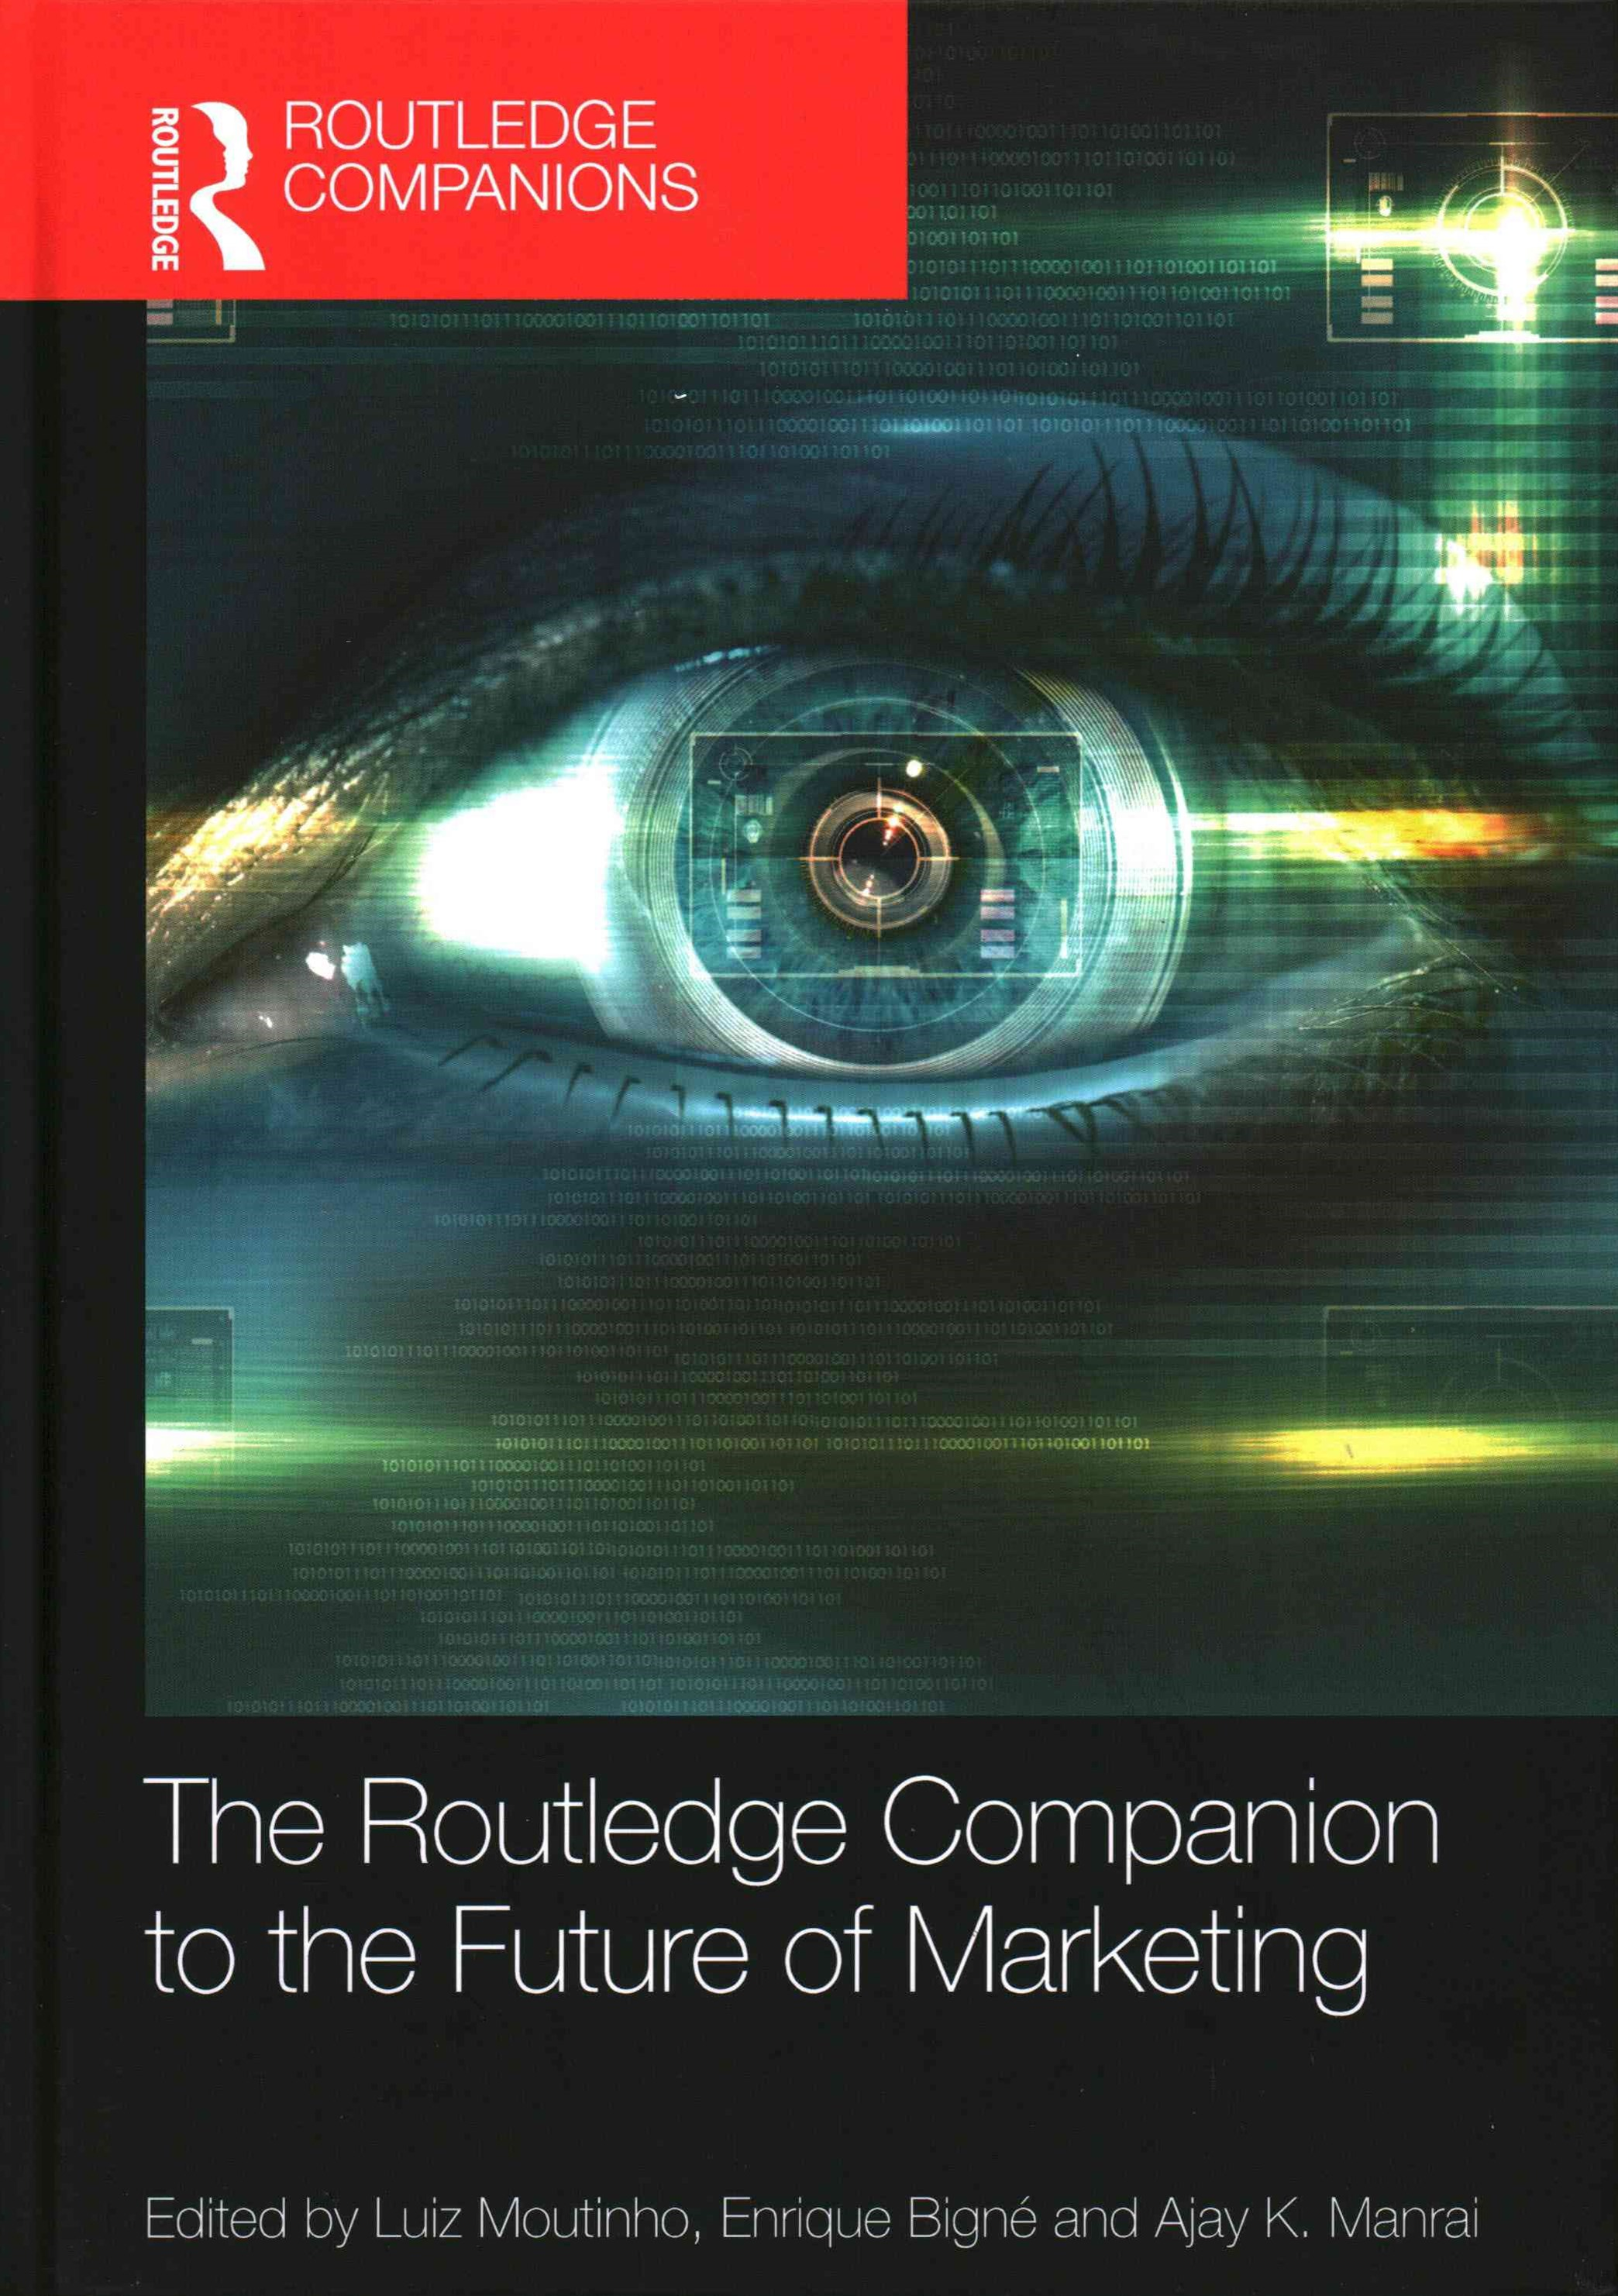 The Routledge Companion to the Future of Marketing